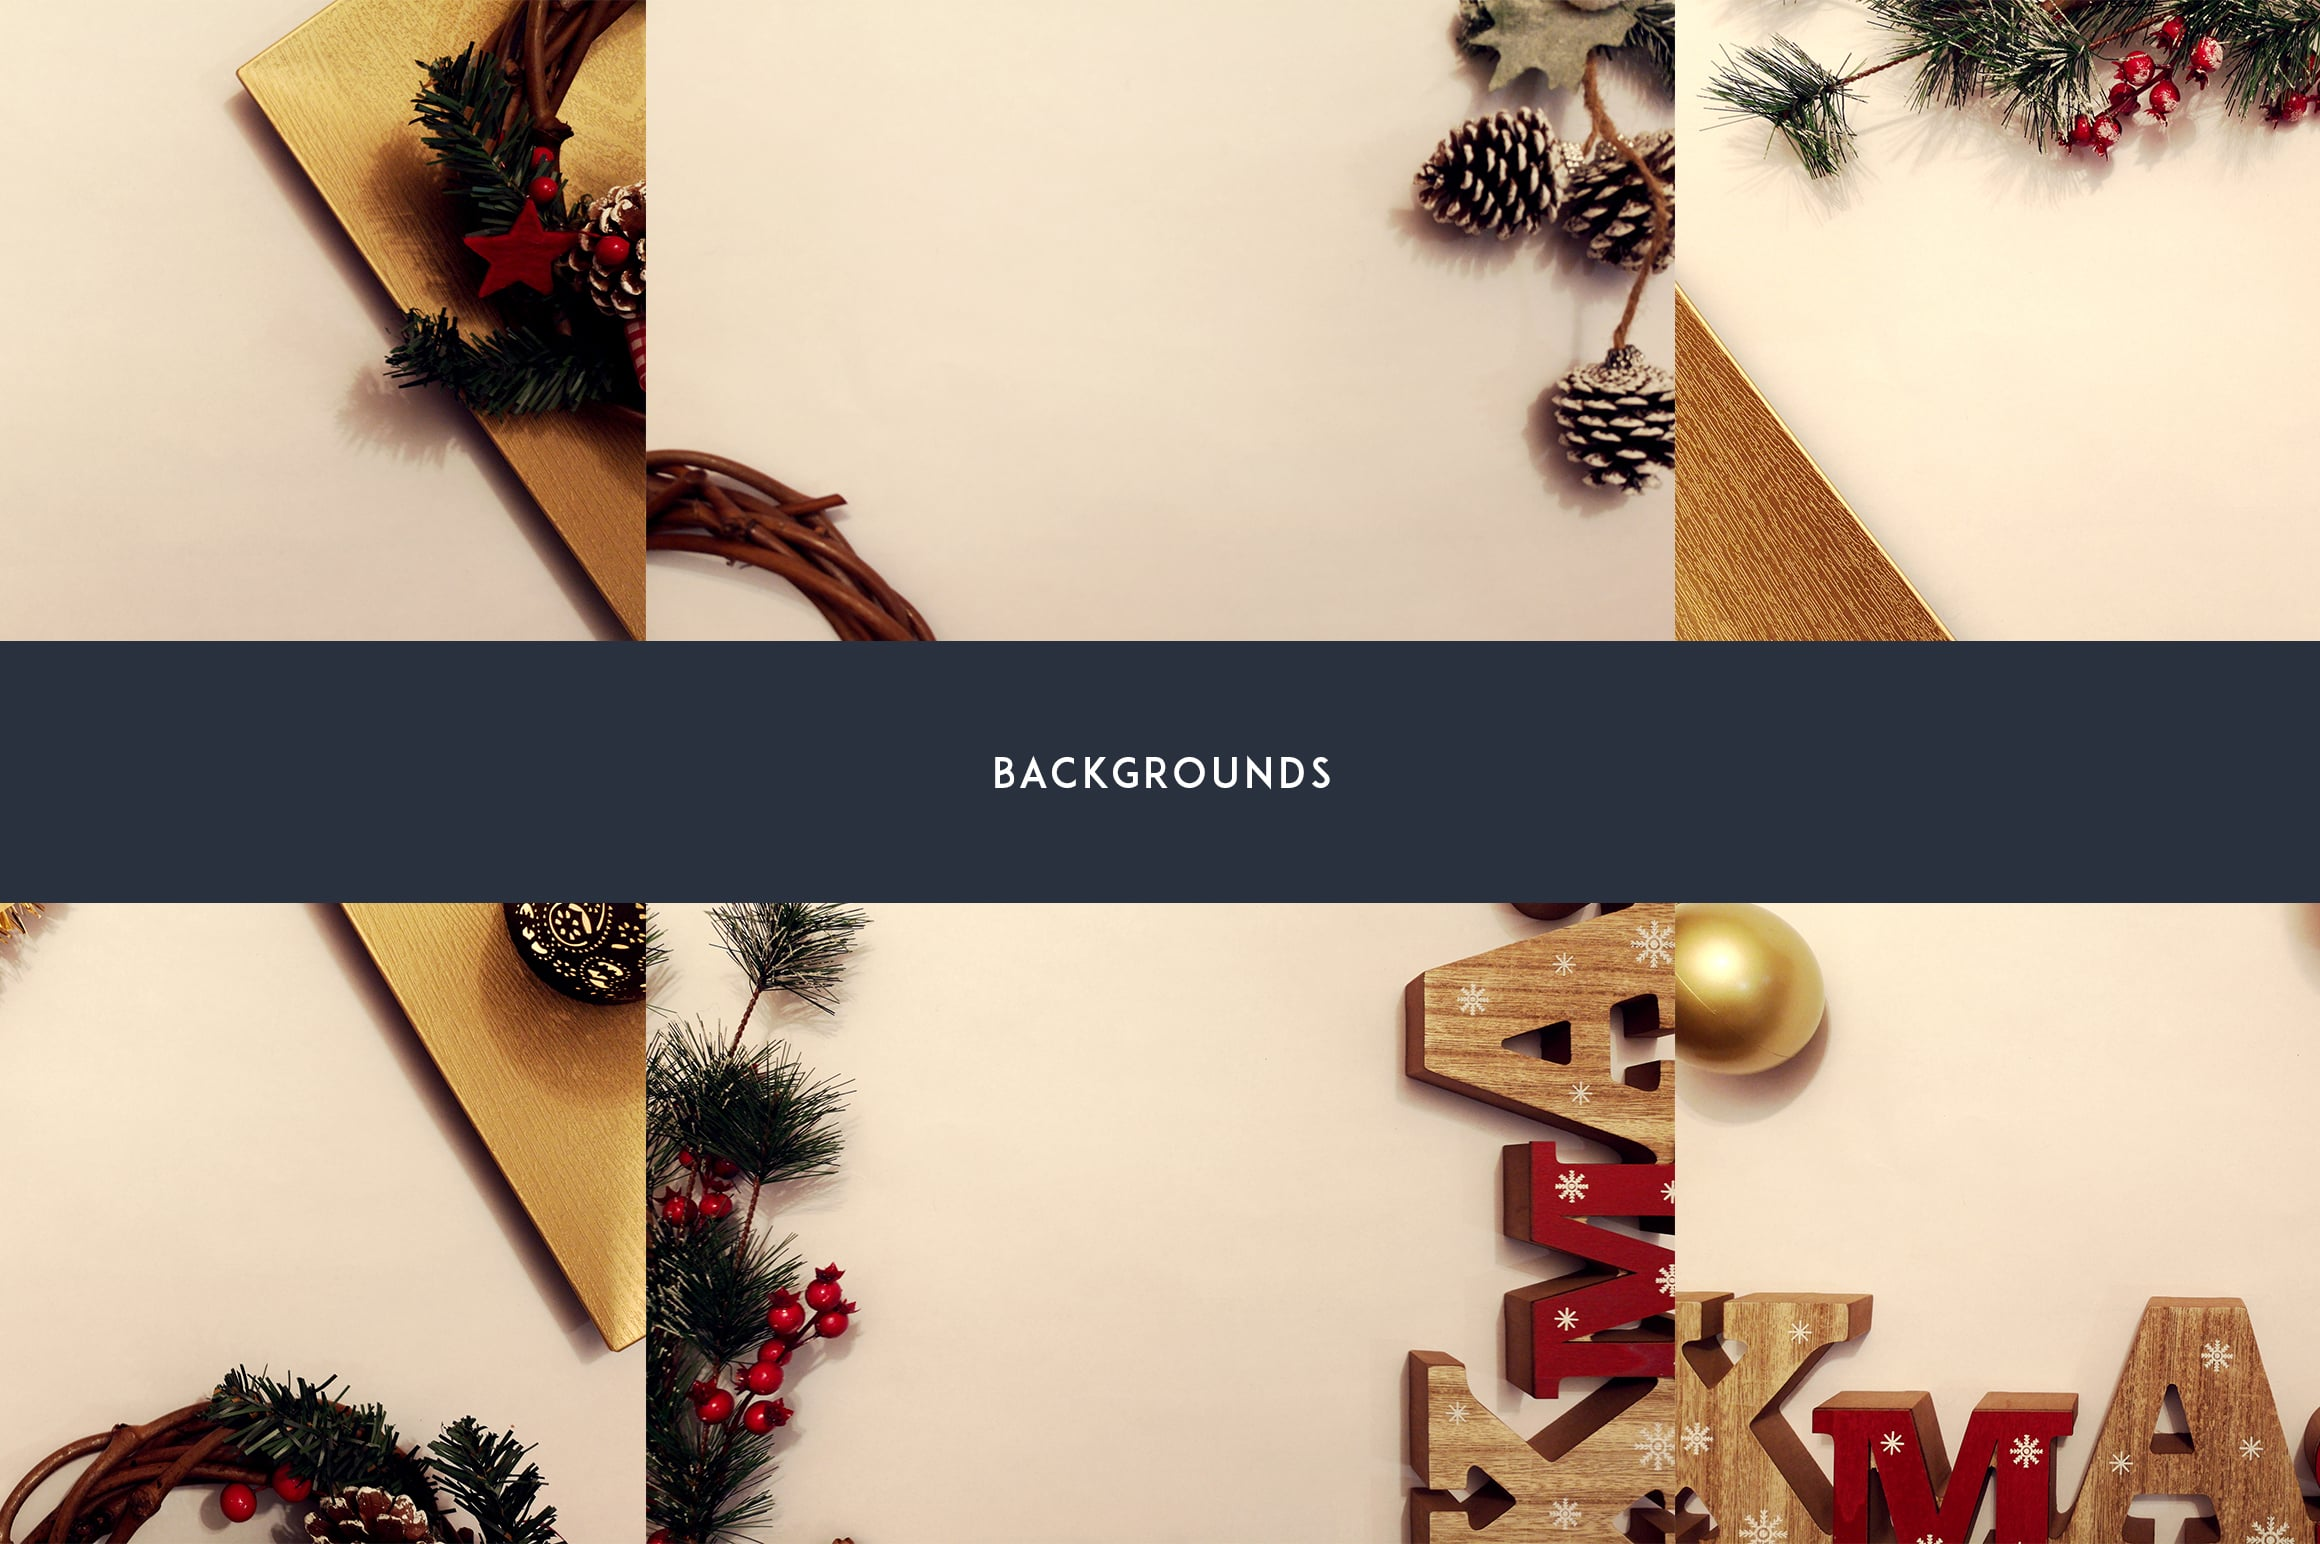 12 Christmas Mockups + Backgrounds - $9 ONLY - 5 2